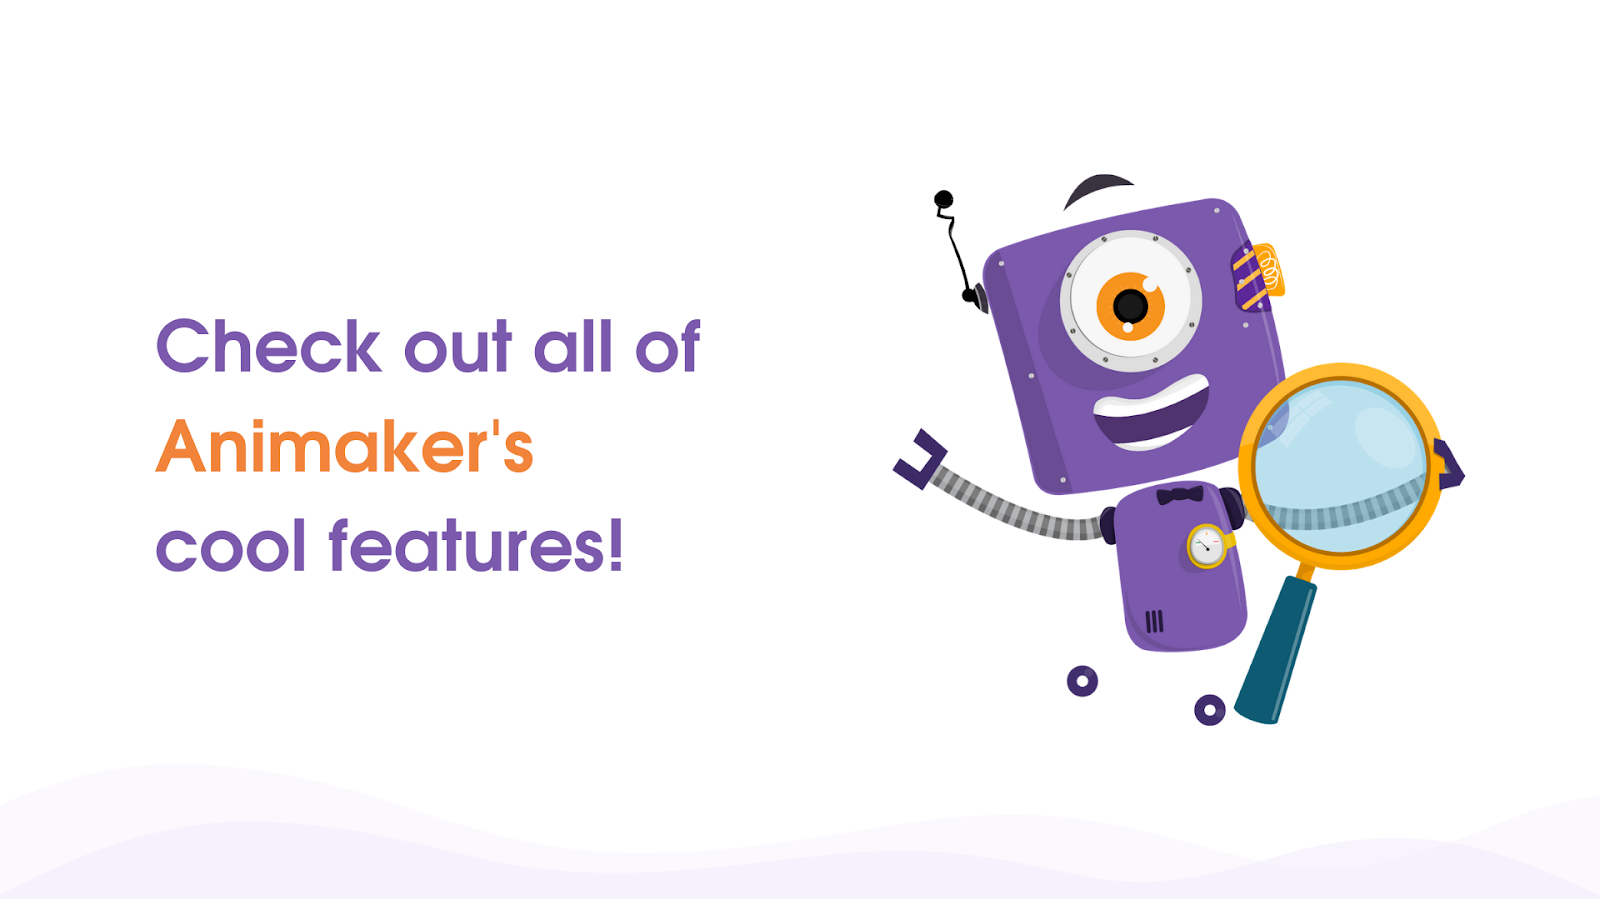 Animaker Inc: The Best Animation Software for Beginners